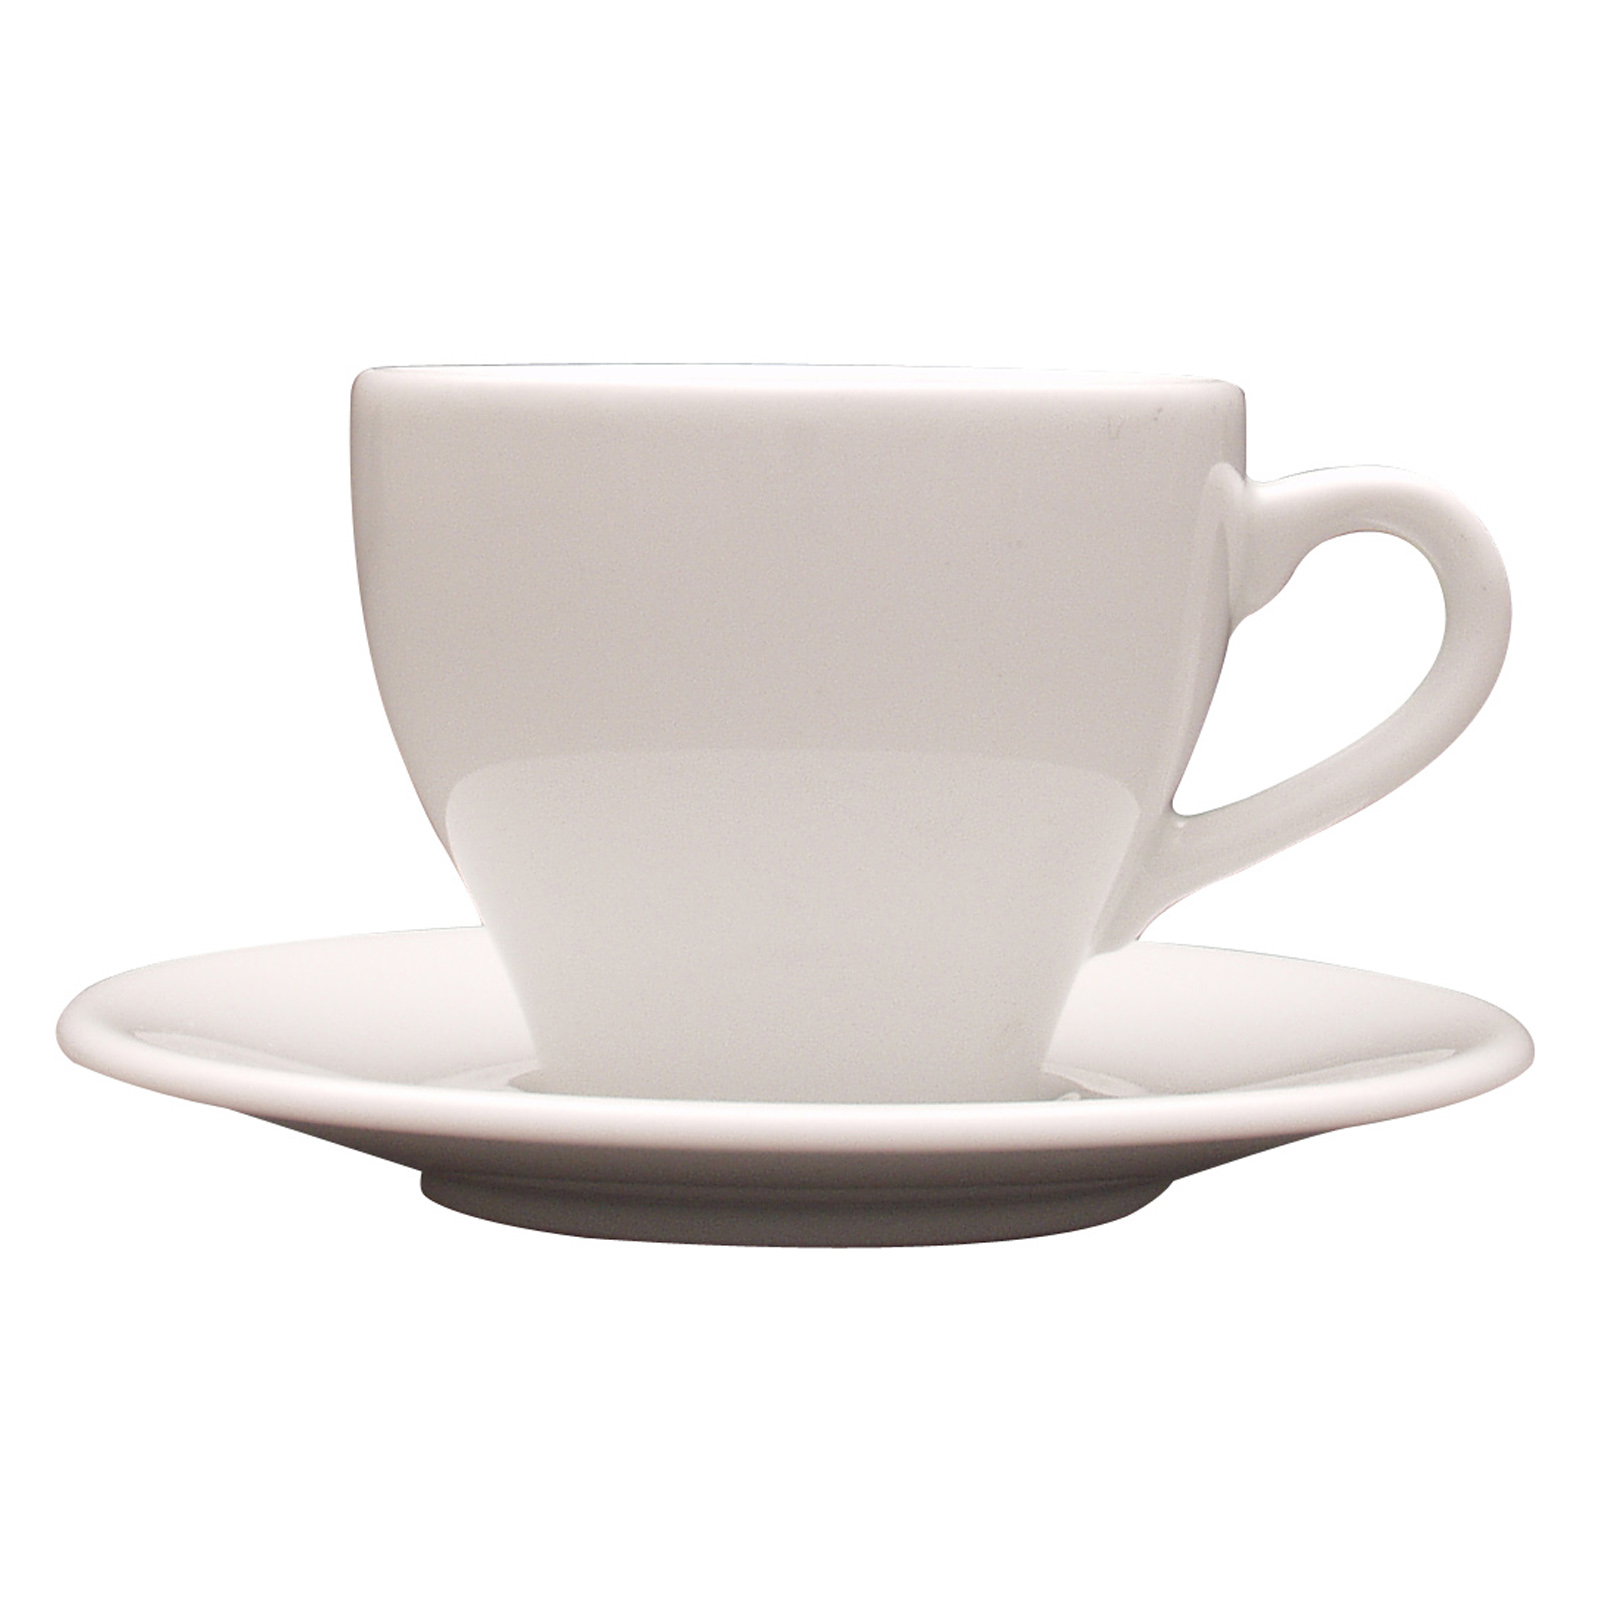 Set of 24 Paula Coffee Saucers by Lubiana